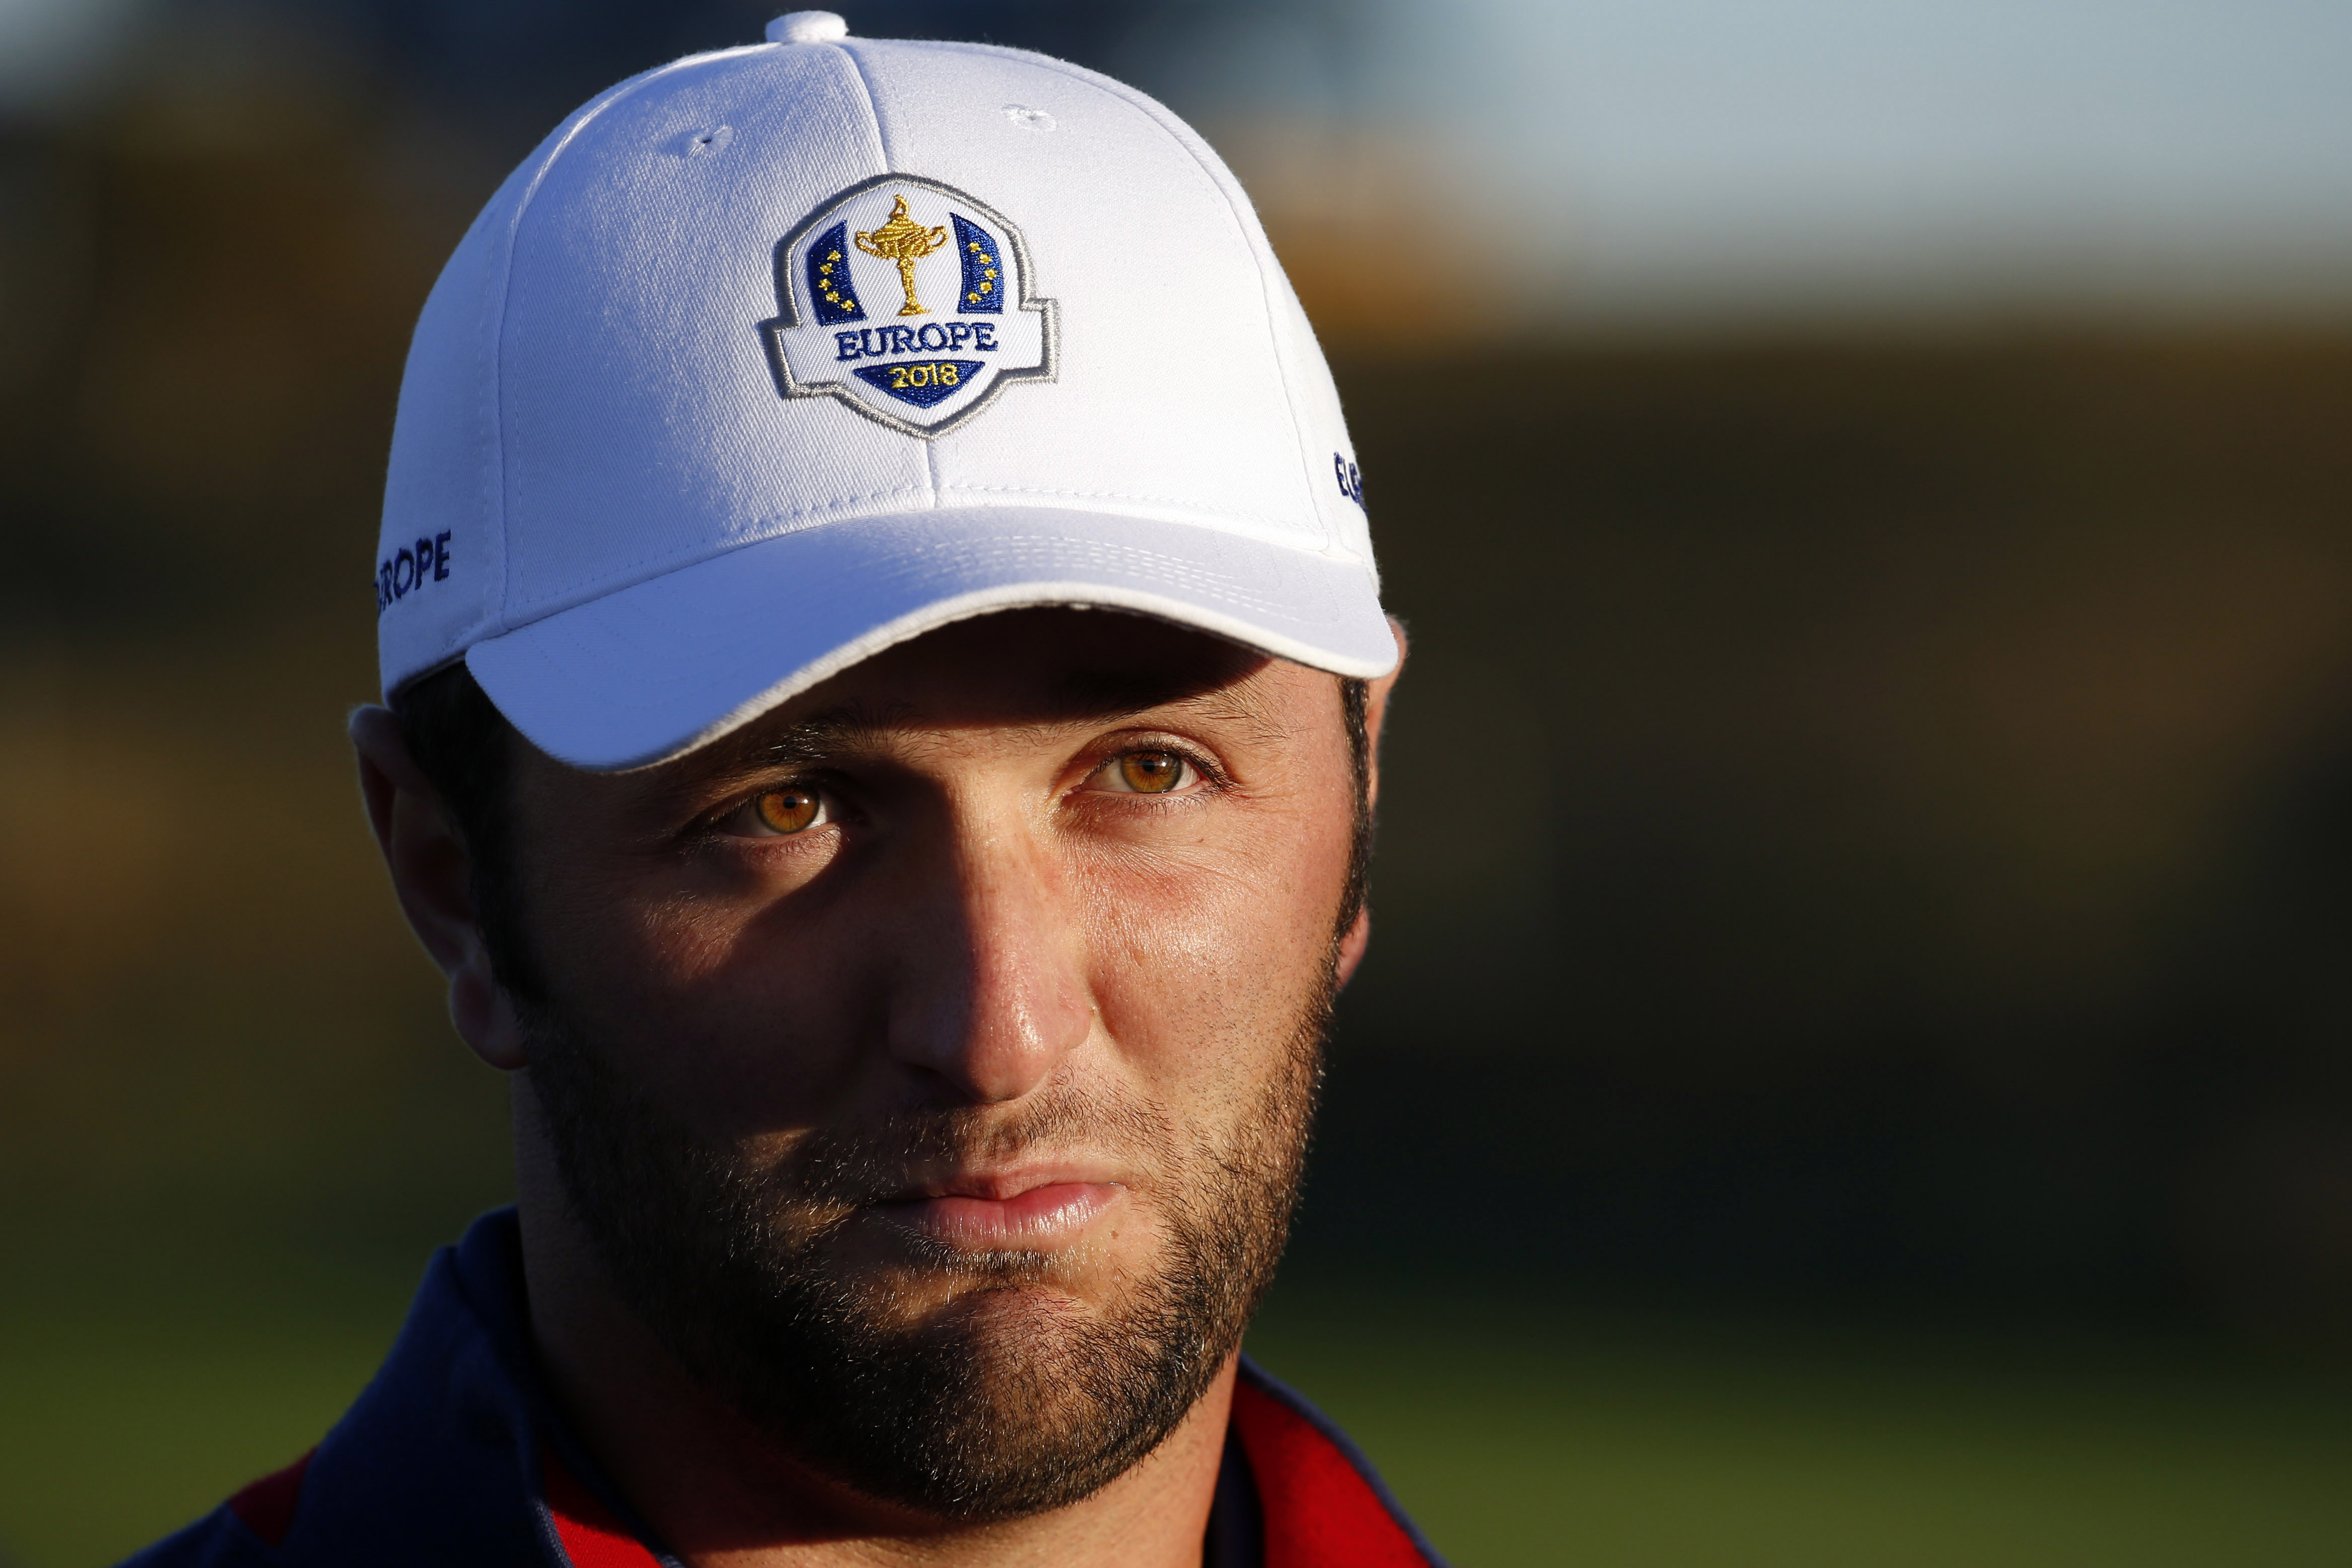 Sep 25, 2018; Paris, FRA; European golfer Jon Rahm stands in the 10th fairway during a Ryder Cup practice round at Le Golf National. Mandatory Credit: Brian Spurlock-USA TODAY Sports